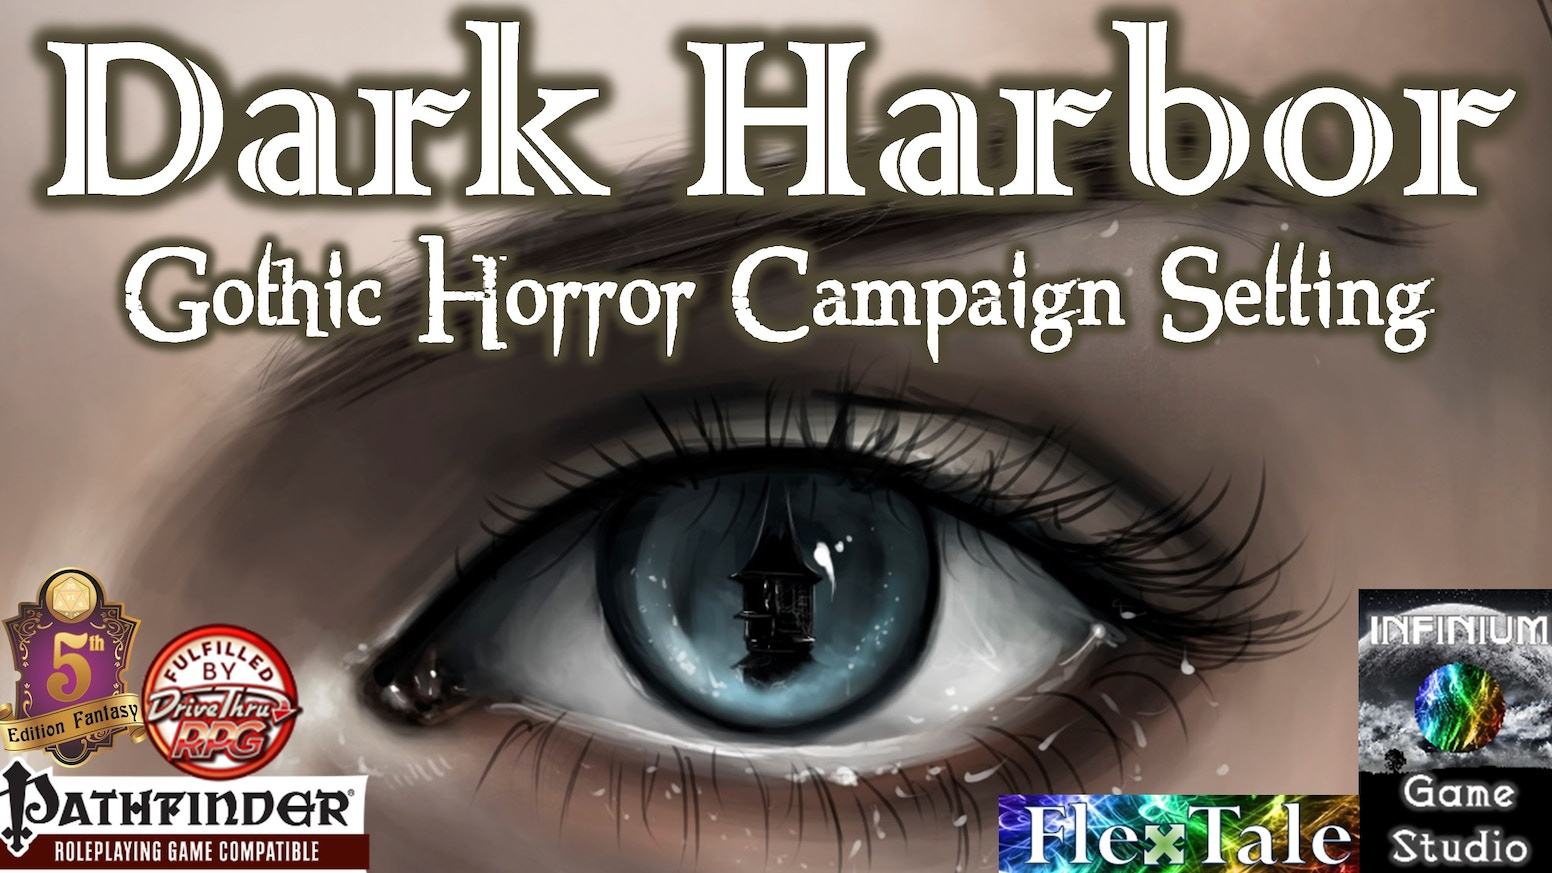 A gothic-horror fantasy RPG campaign setting for Pathfinder/5E, Dark Harbor is Ravenloft by way of Planescape, presented via Saw.